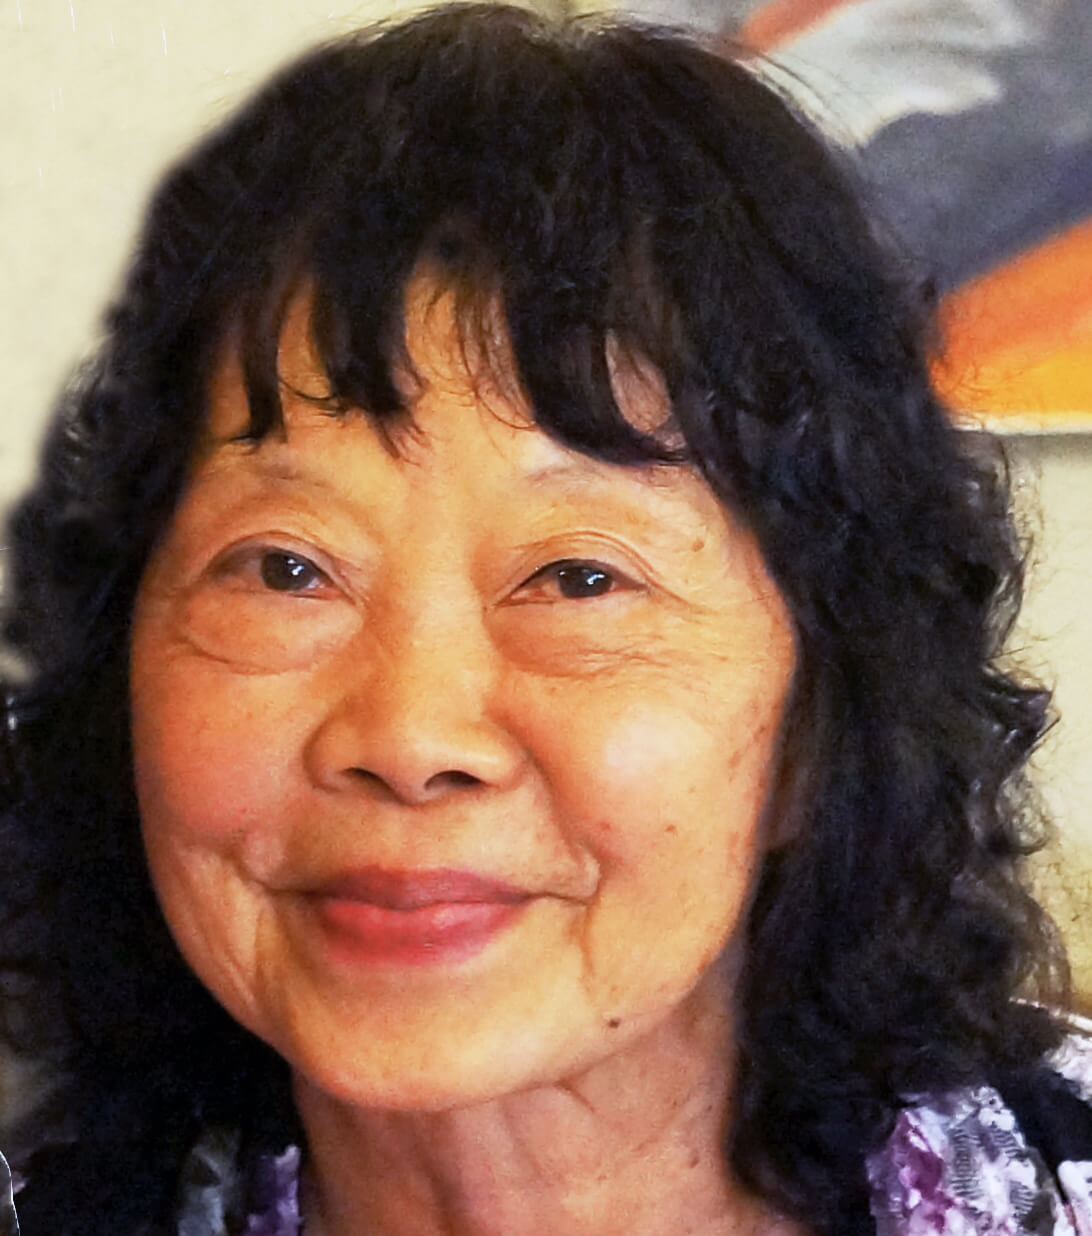 Mae-Wan Ho: Geneticist, homeopathy supporter, evolution denier campaigning to scuttle GMO crops